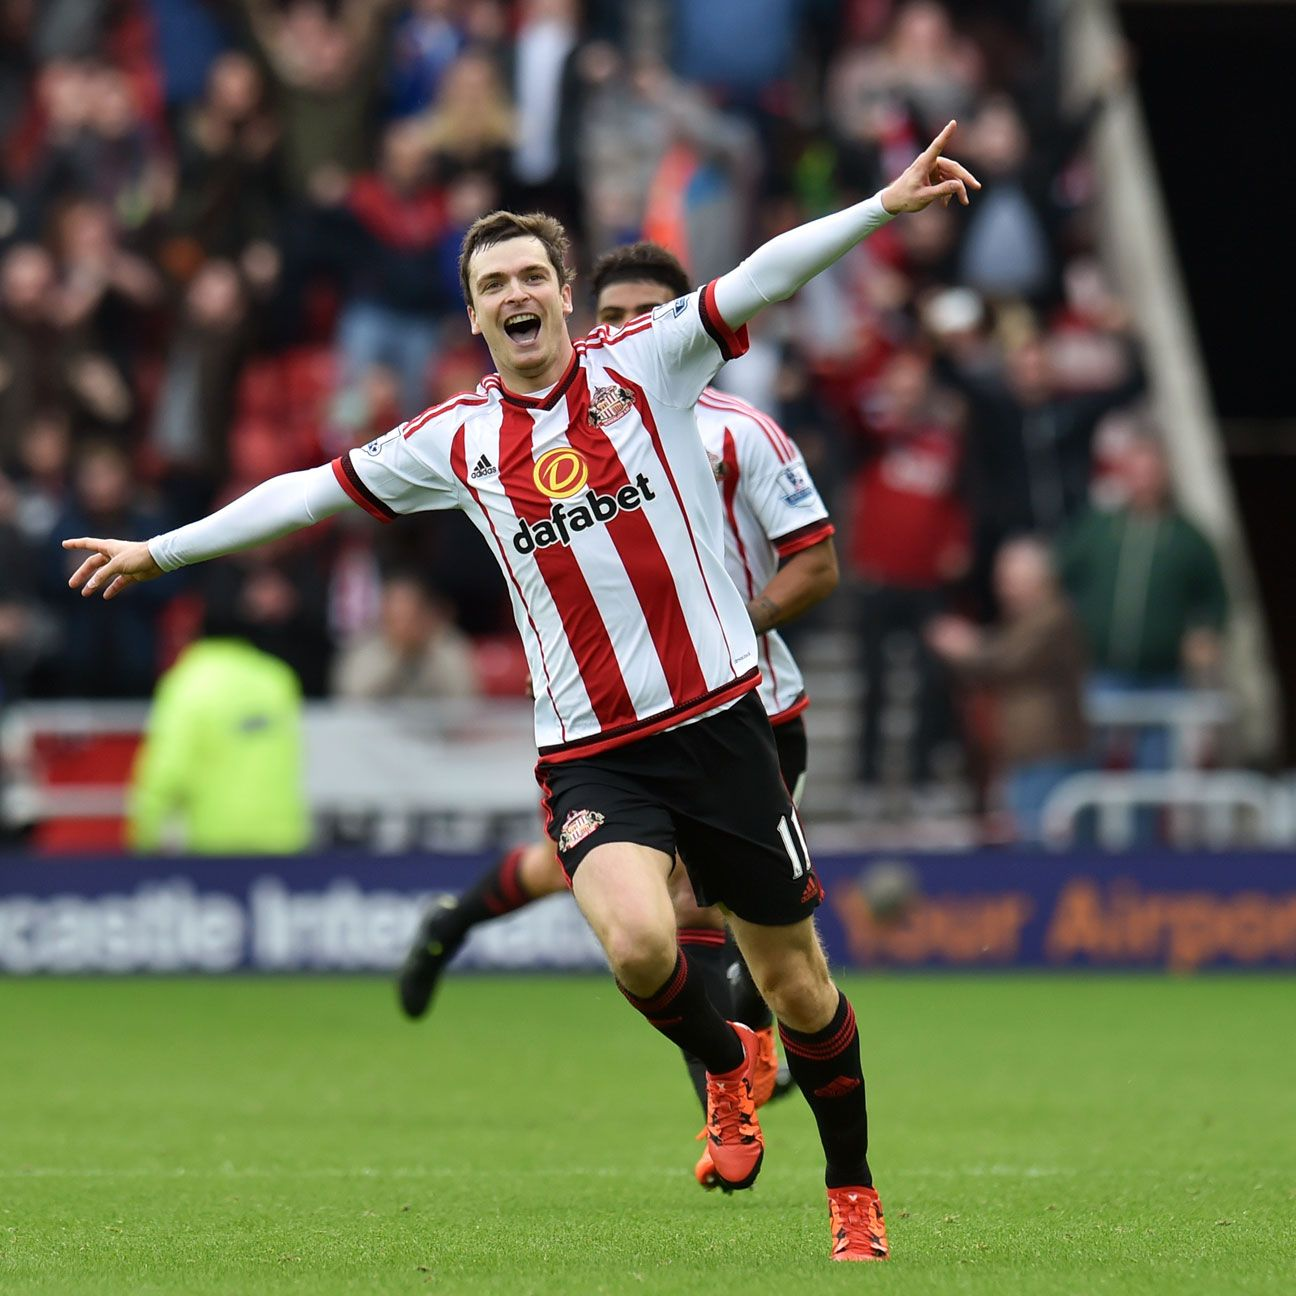 Adam Johnson's penalty conversion triggered yet another Sunderland win over derby rivals Newcastle.